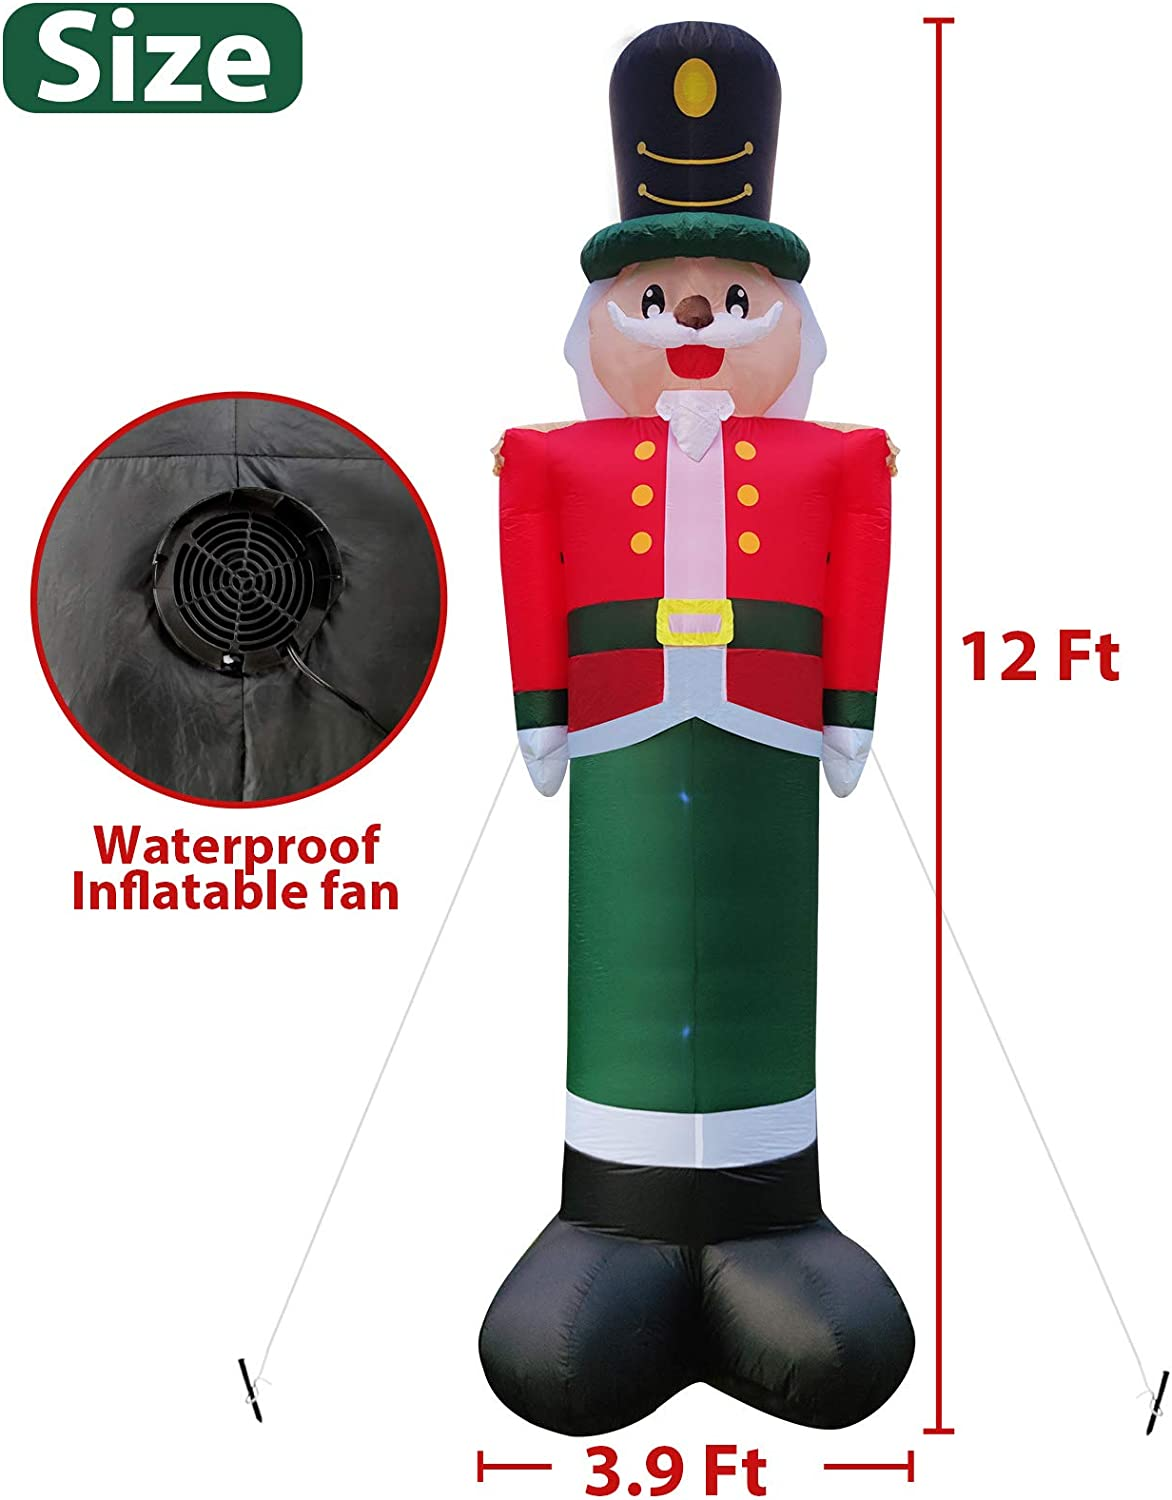 Camlinbo 12 Feet Giant Christmas Inflatables Nutcrackers Decoration with LED Lights 6 Stakes 4 Tethers Christmas Blow Up Outdoor Yard Garden Lawn Xmas Party Decor